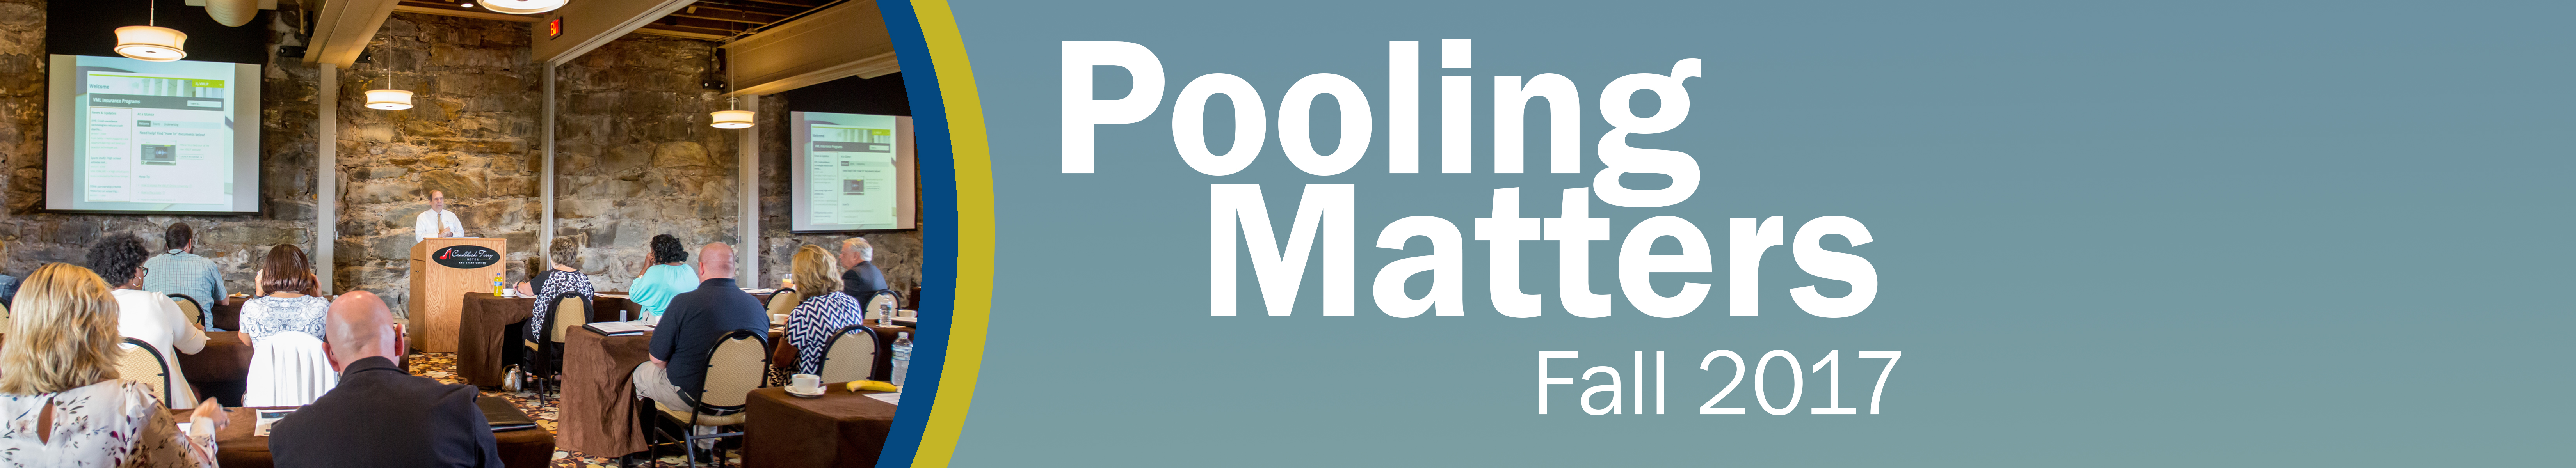 Pooling Matters